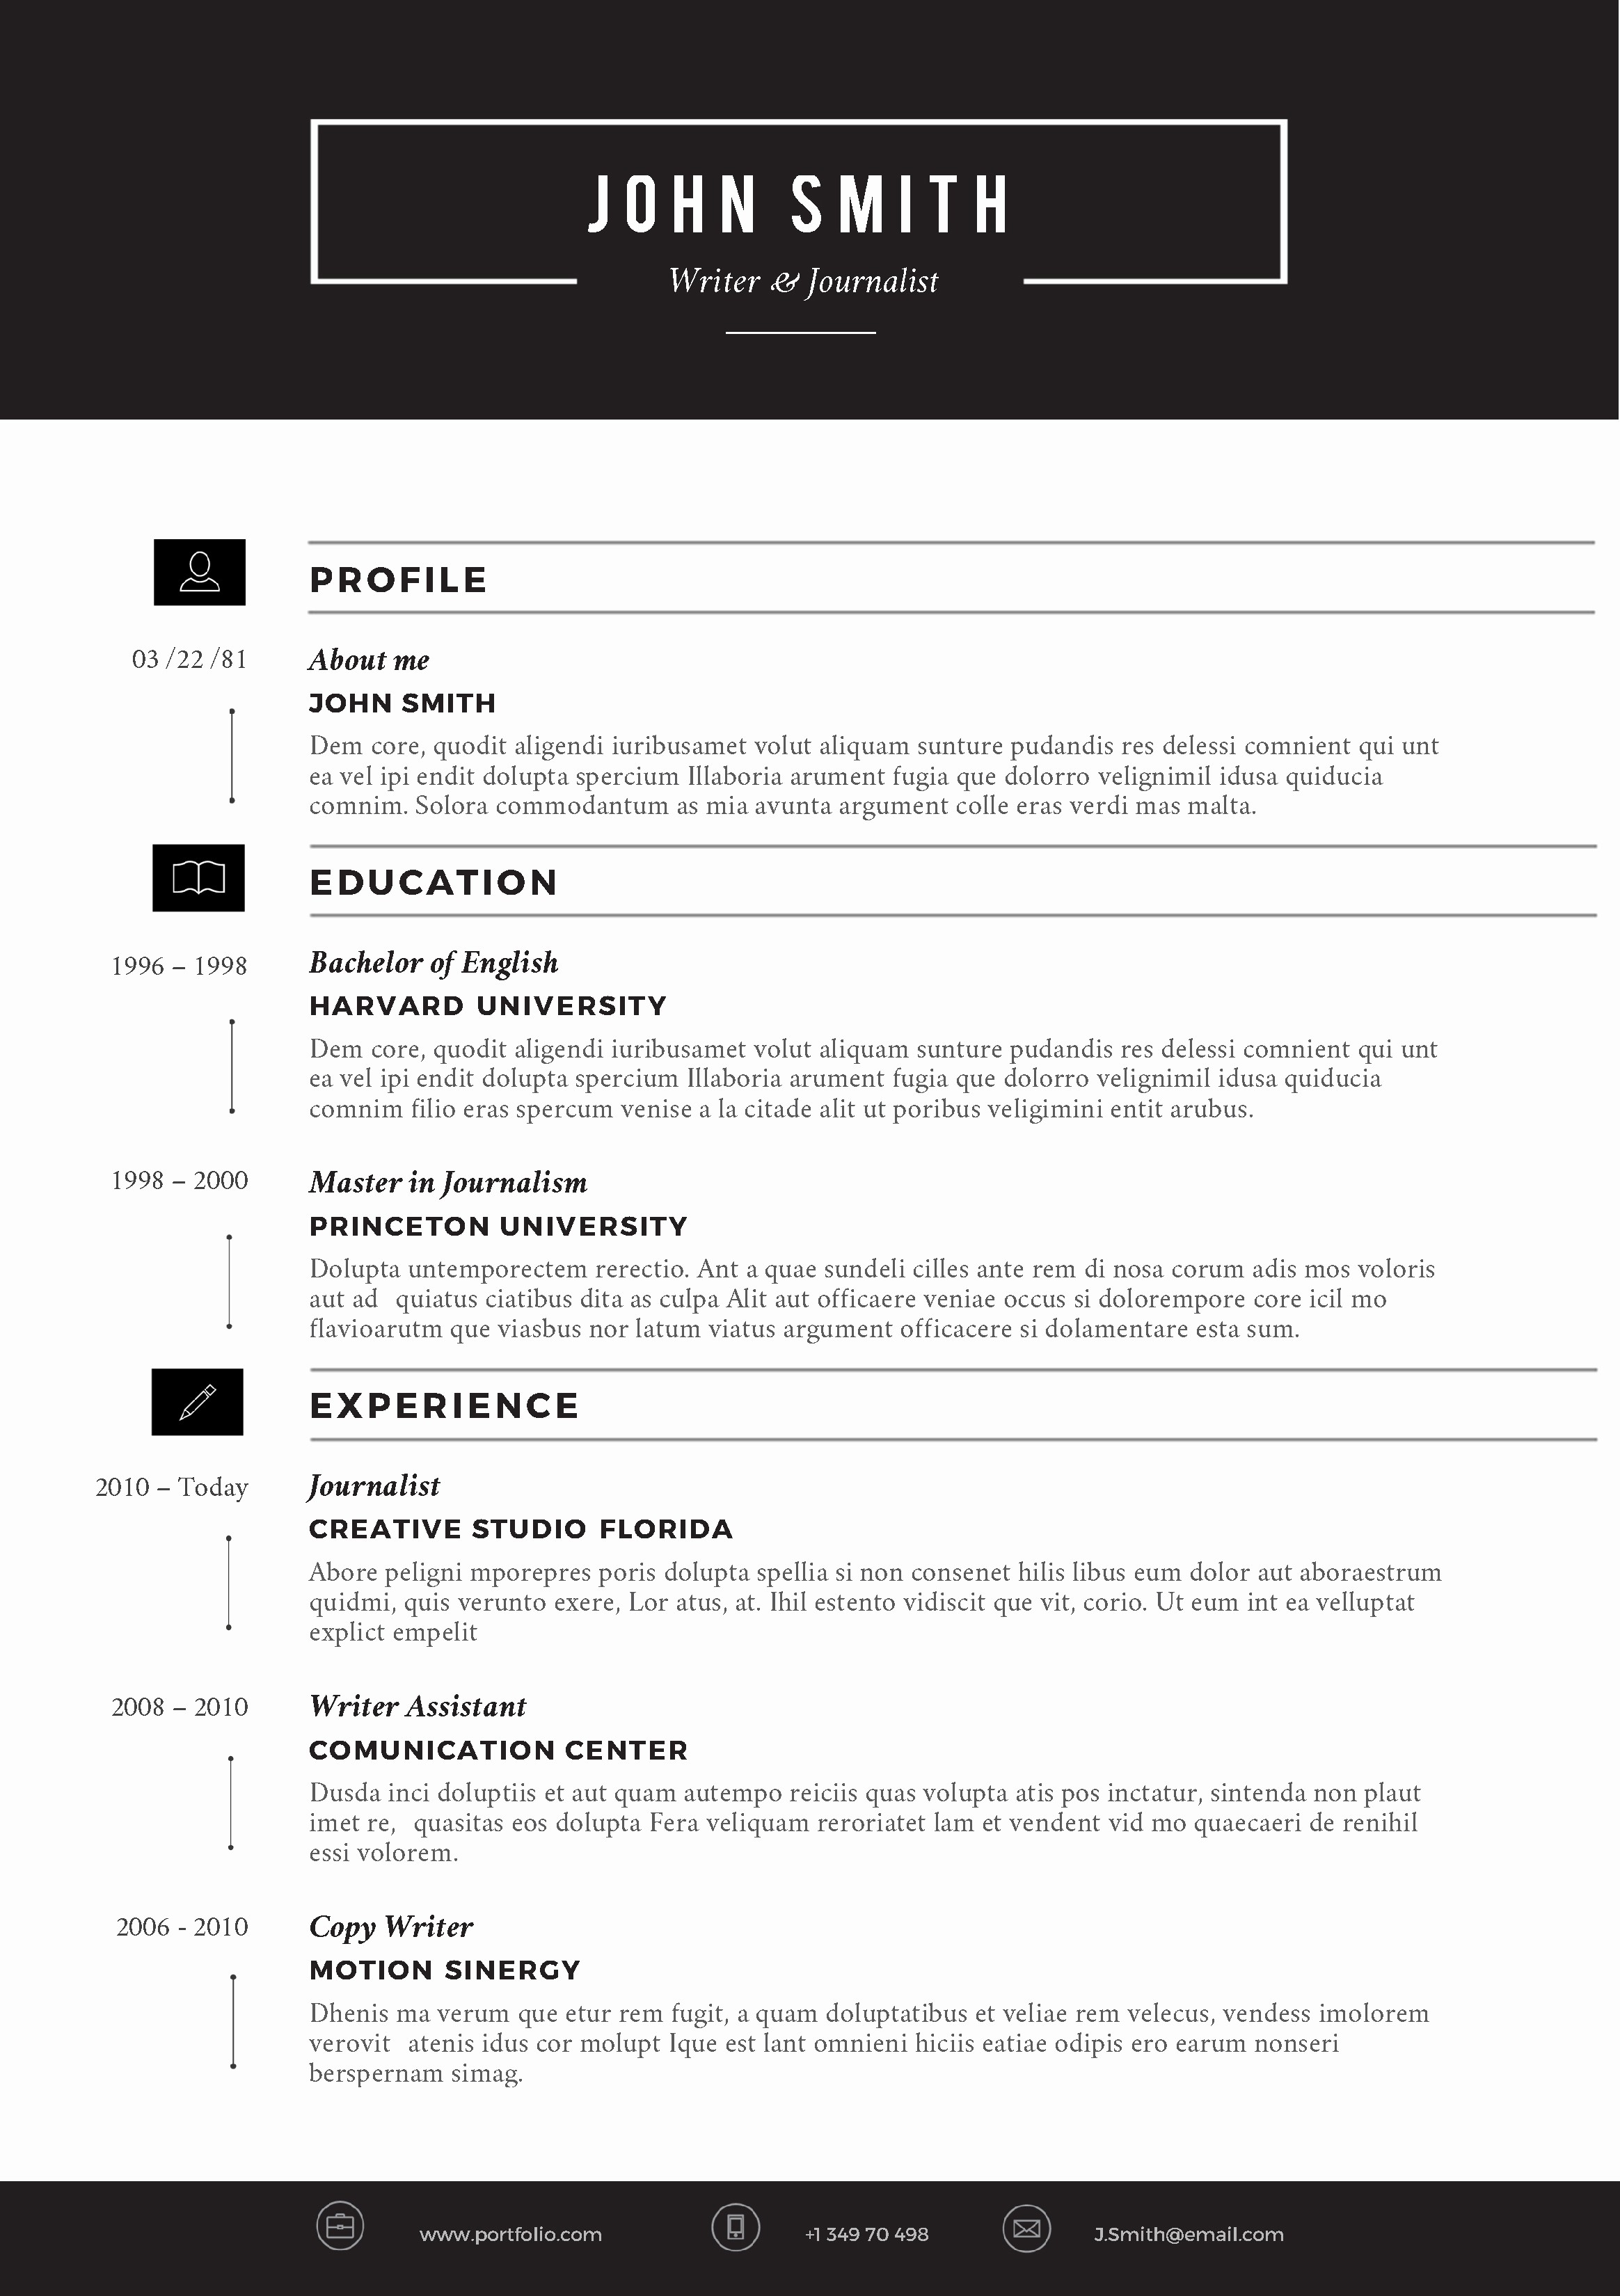 Resume Cover Page Template Word Luxury Fice Resume Template Cover Letter Portfolio